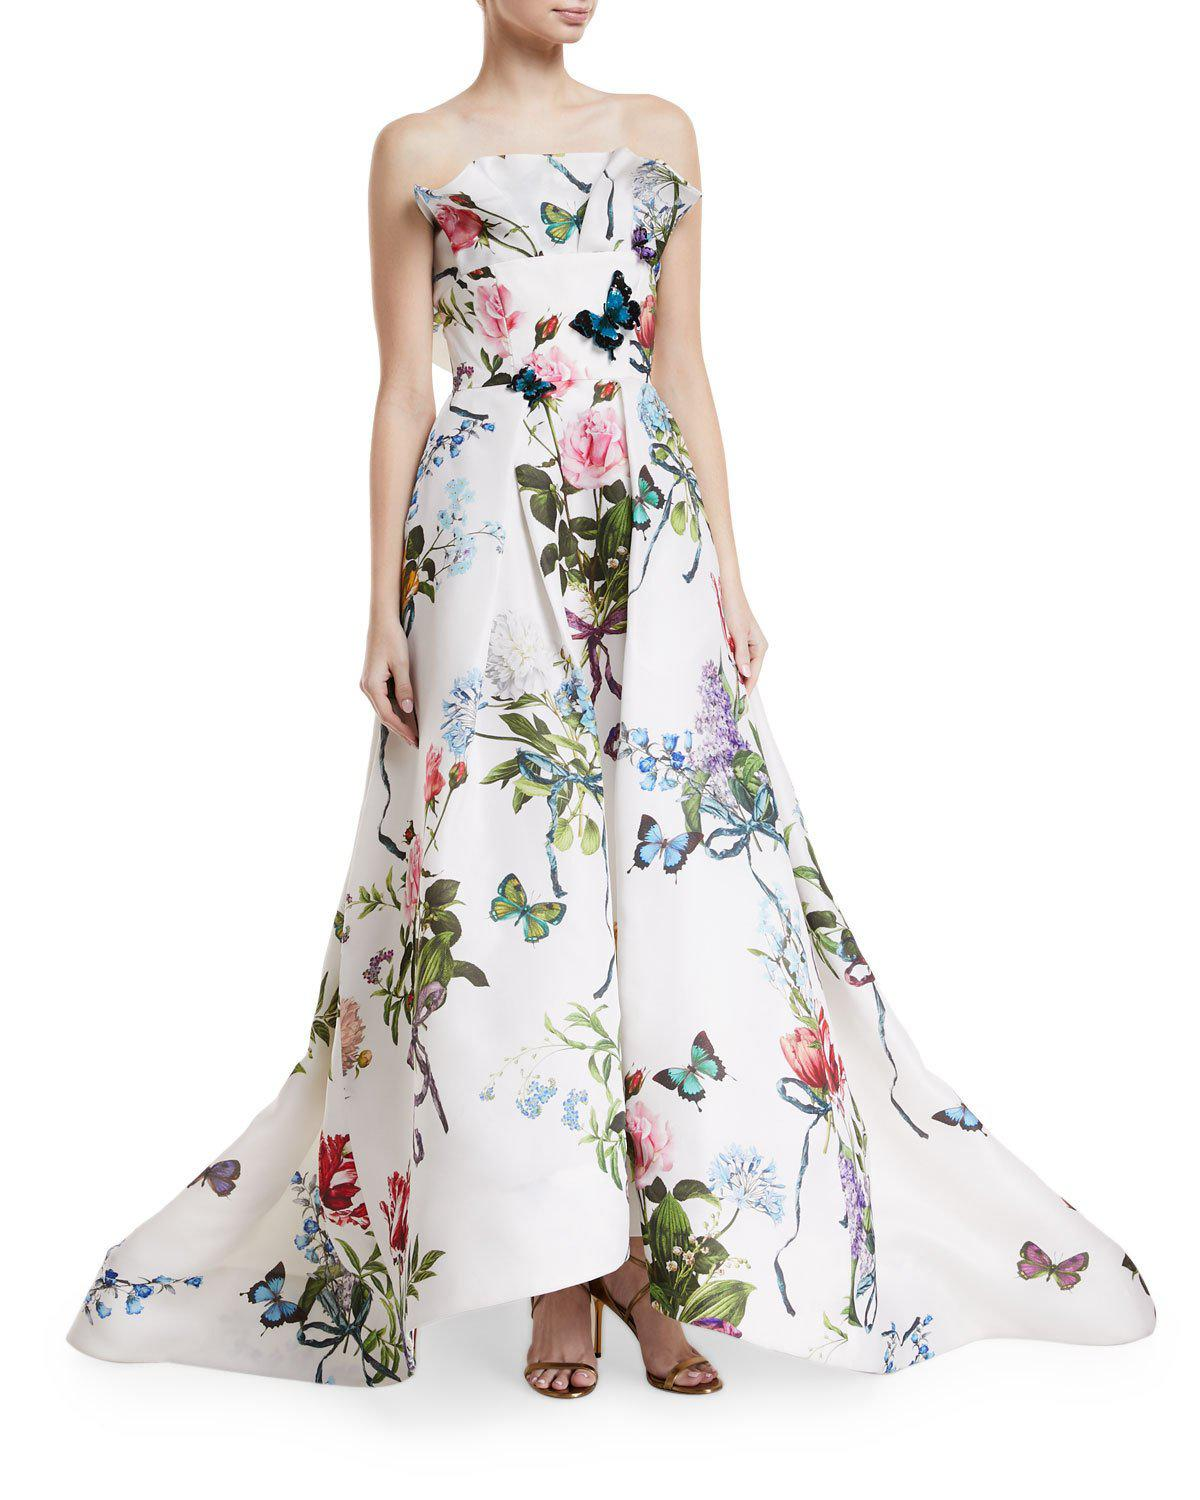 Lyst - Monique Lhuillier Ruffle-neck Floral-print Evening Gown With ...